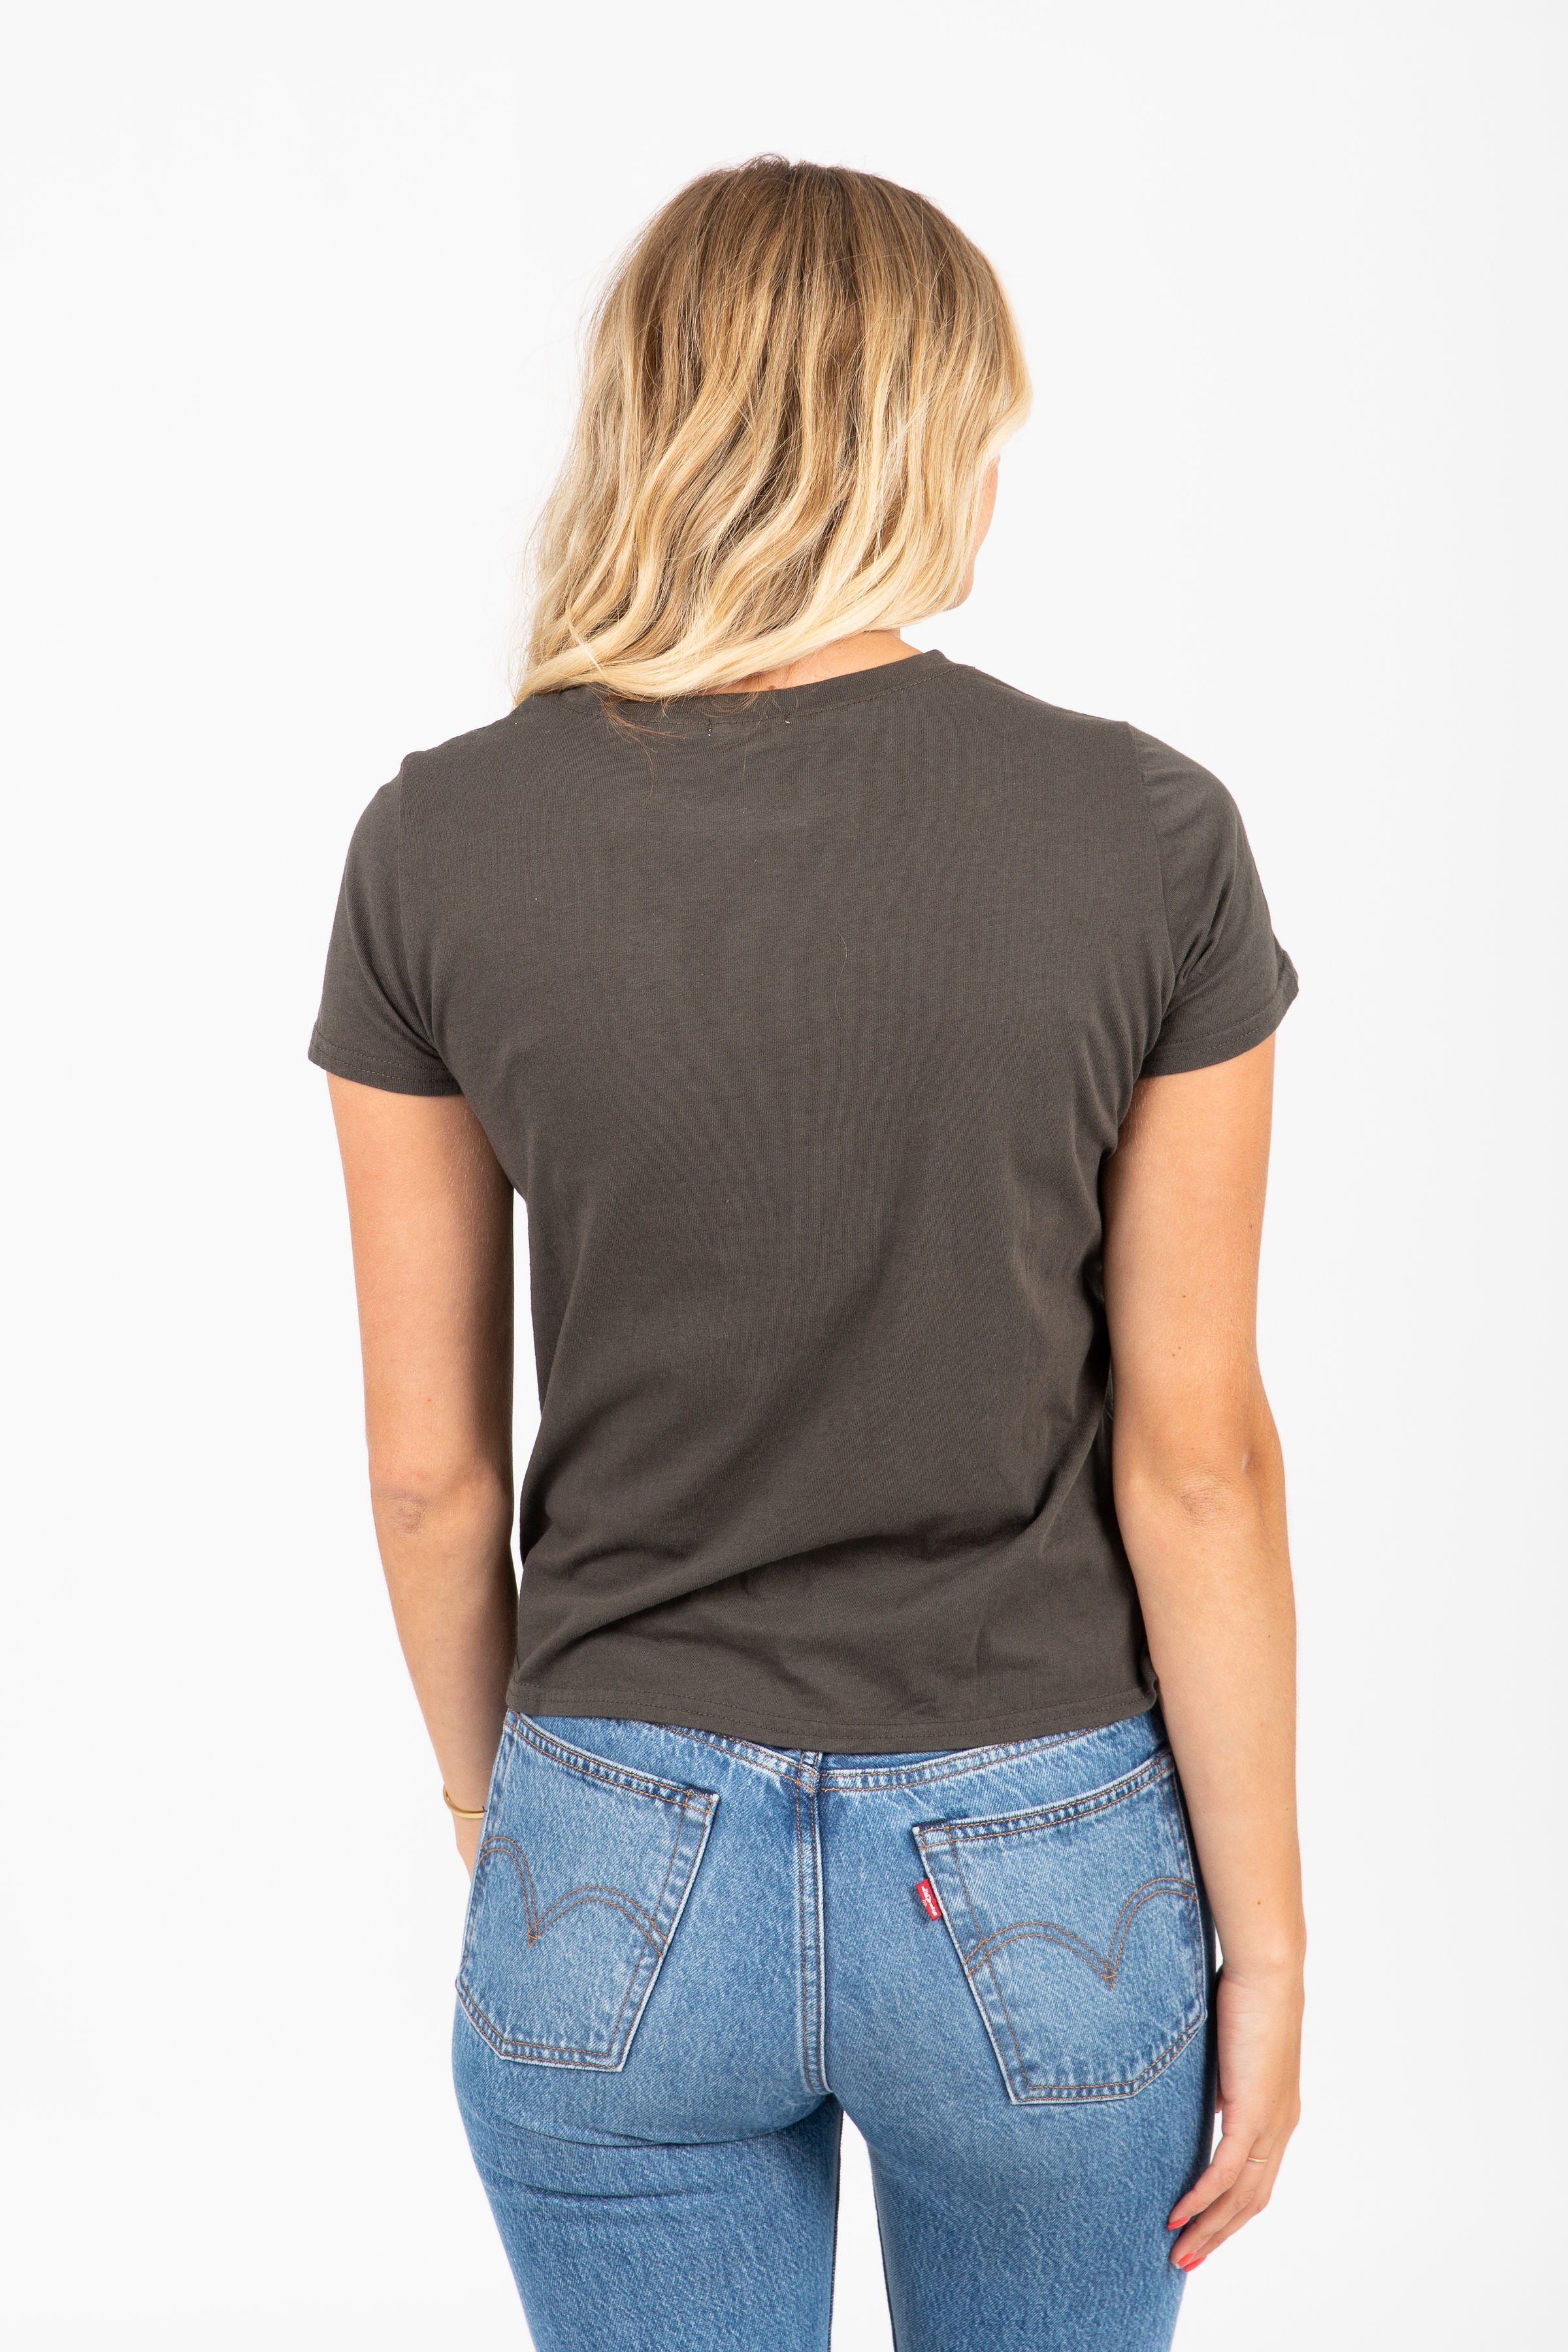 The Lucan NYC Tee in Charcoal